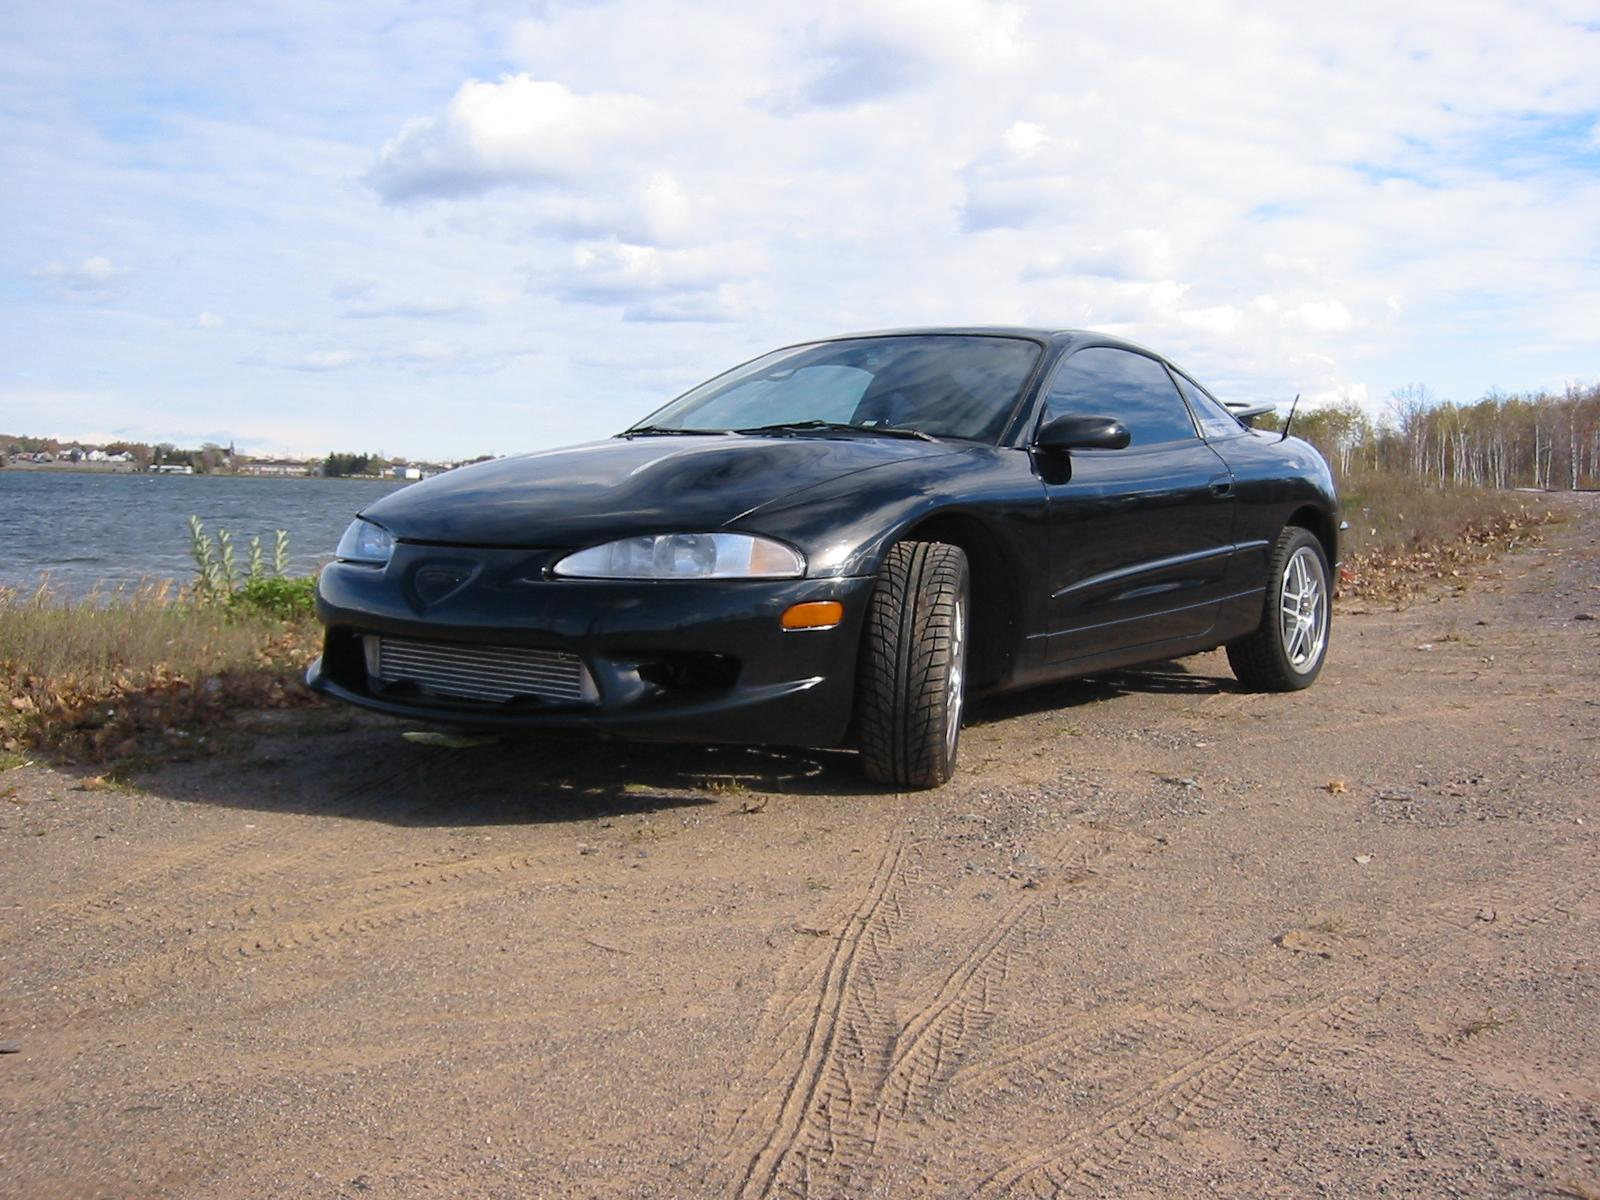 1997 eagle talon tsi awd picture mods upgrades